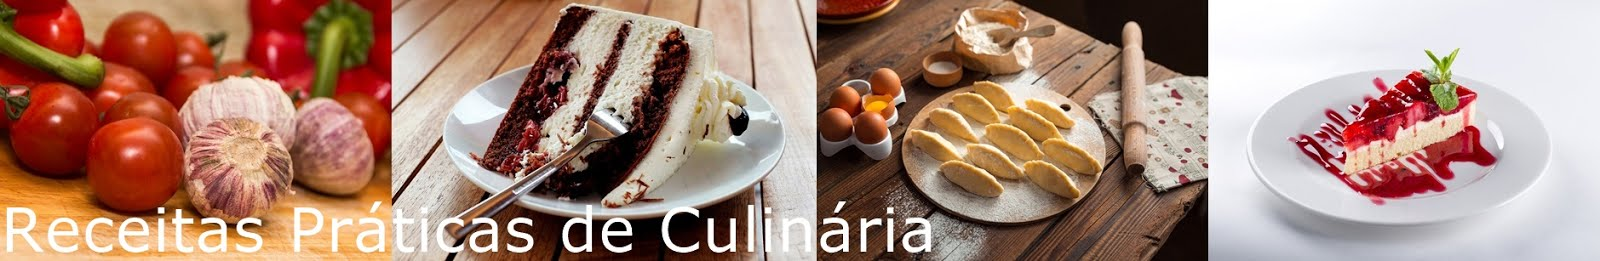 Receitas práticas de culinária